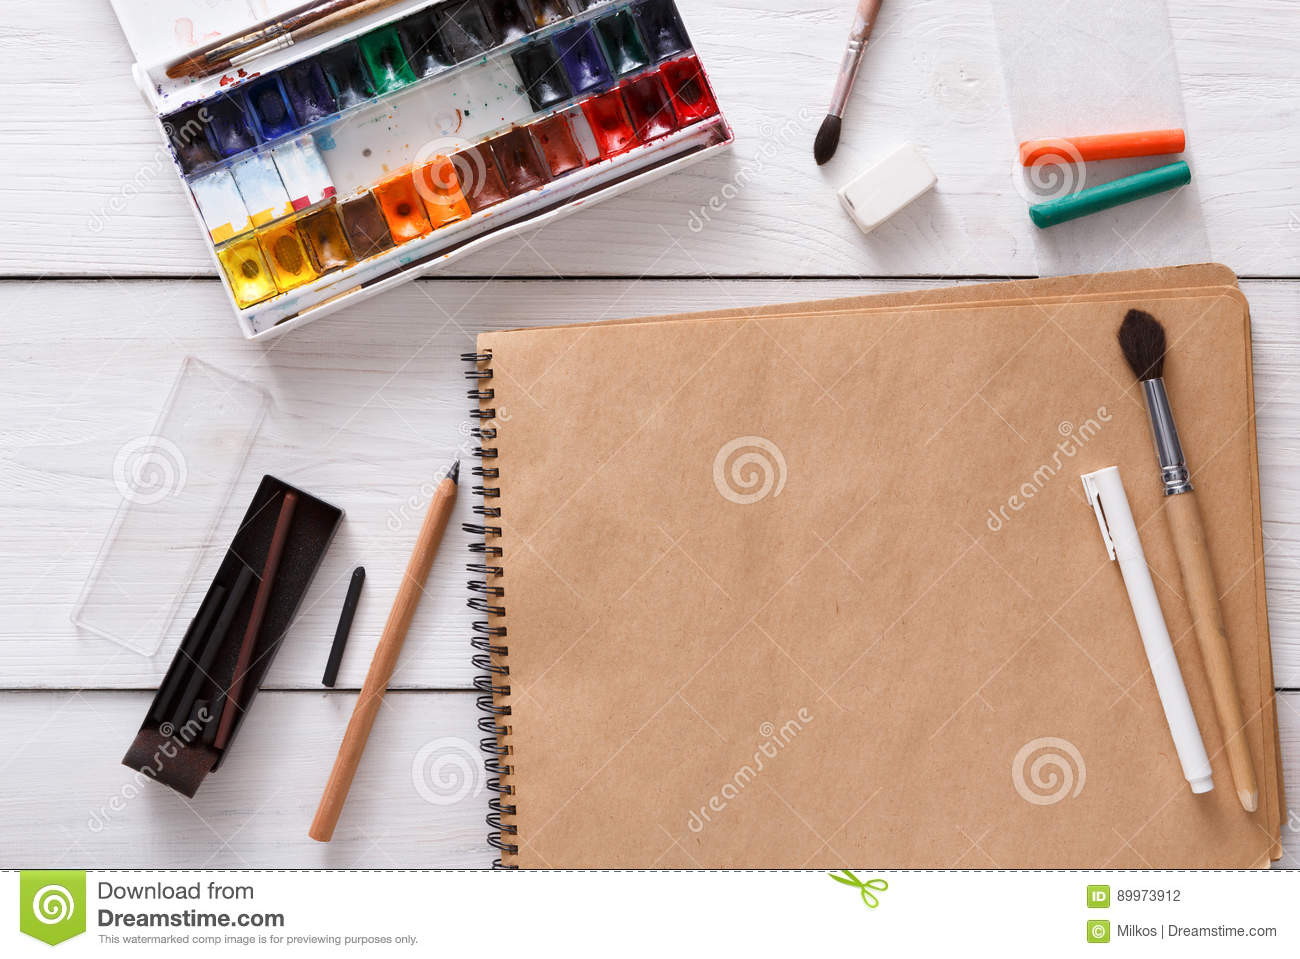 Drawing tools stationary workplace of artist royalty for Online drawing tool